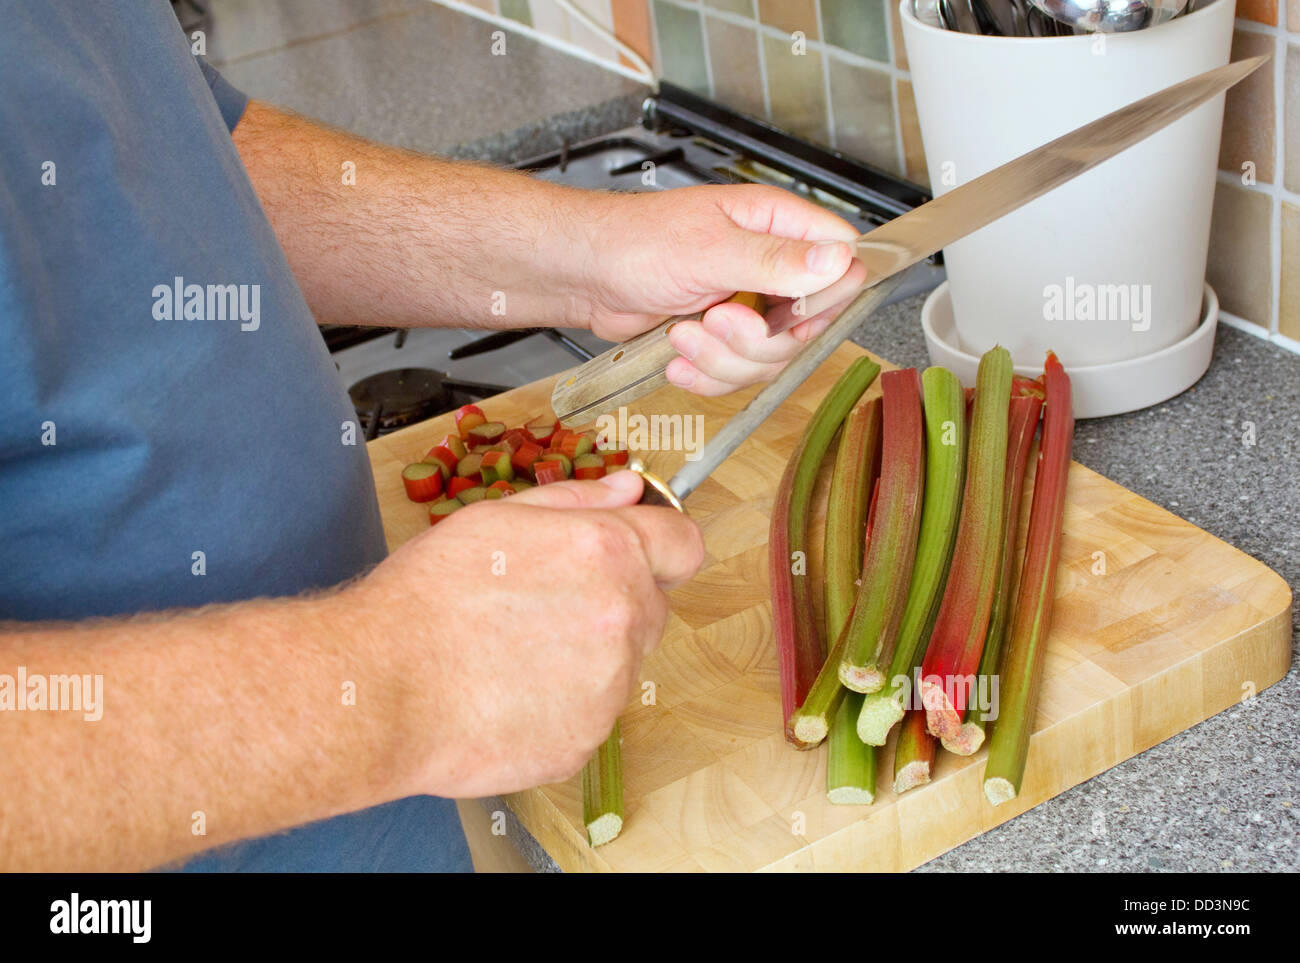 Male cook sharpening knife on a steel in a domestic kitchen. There is rhubarb on the chopping board. - Stock Image